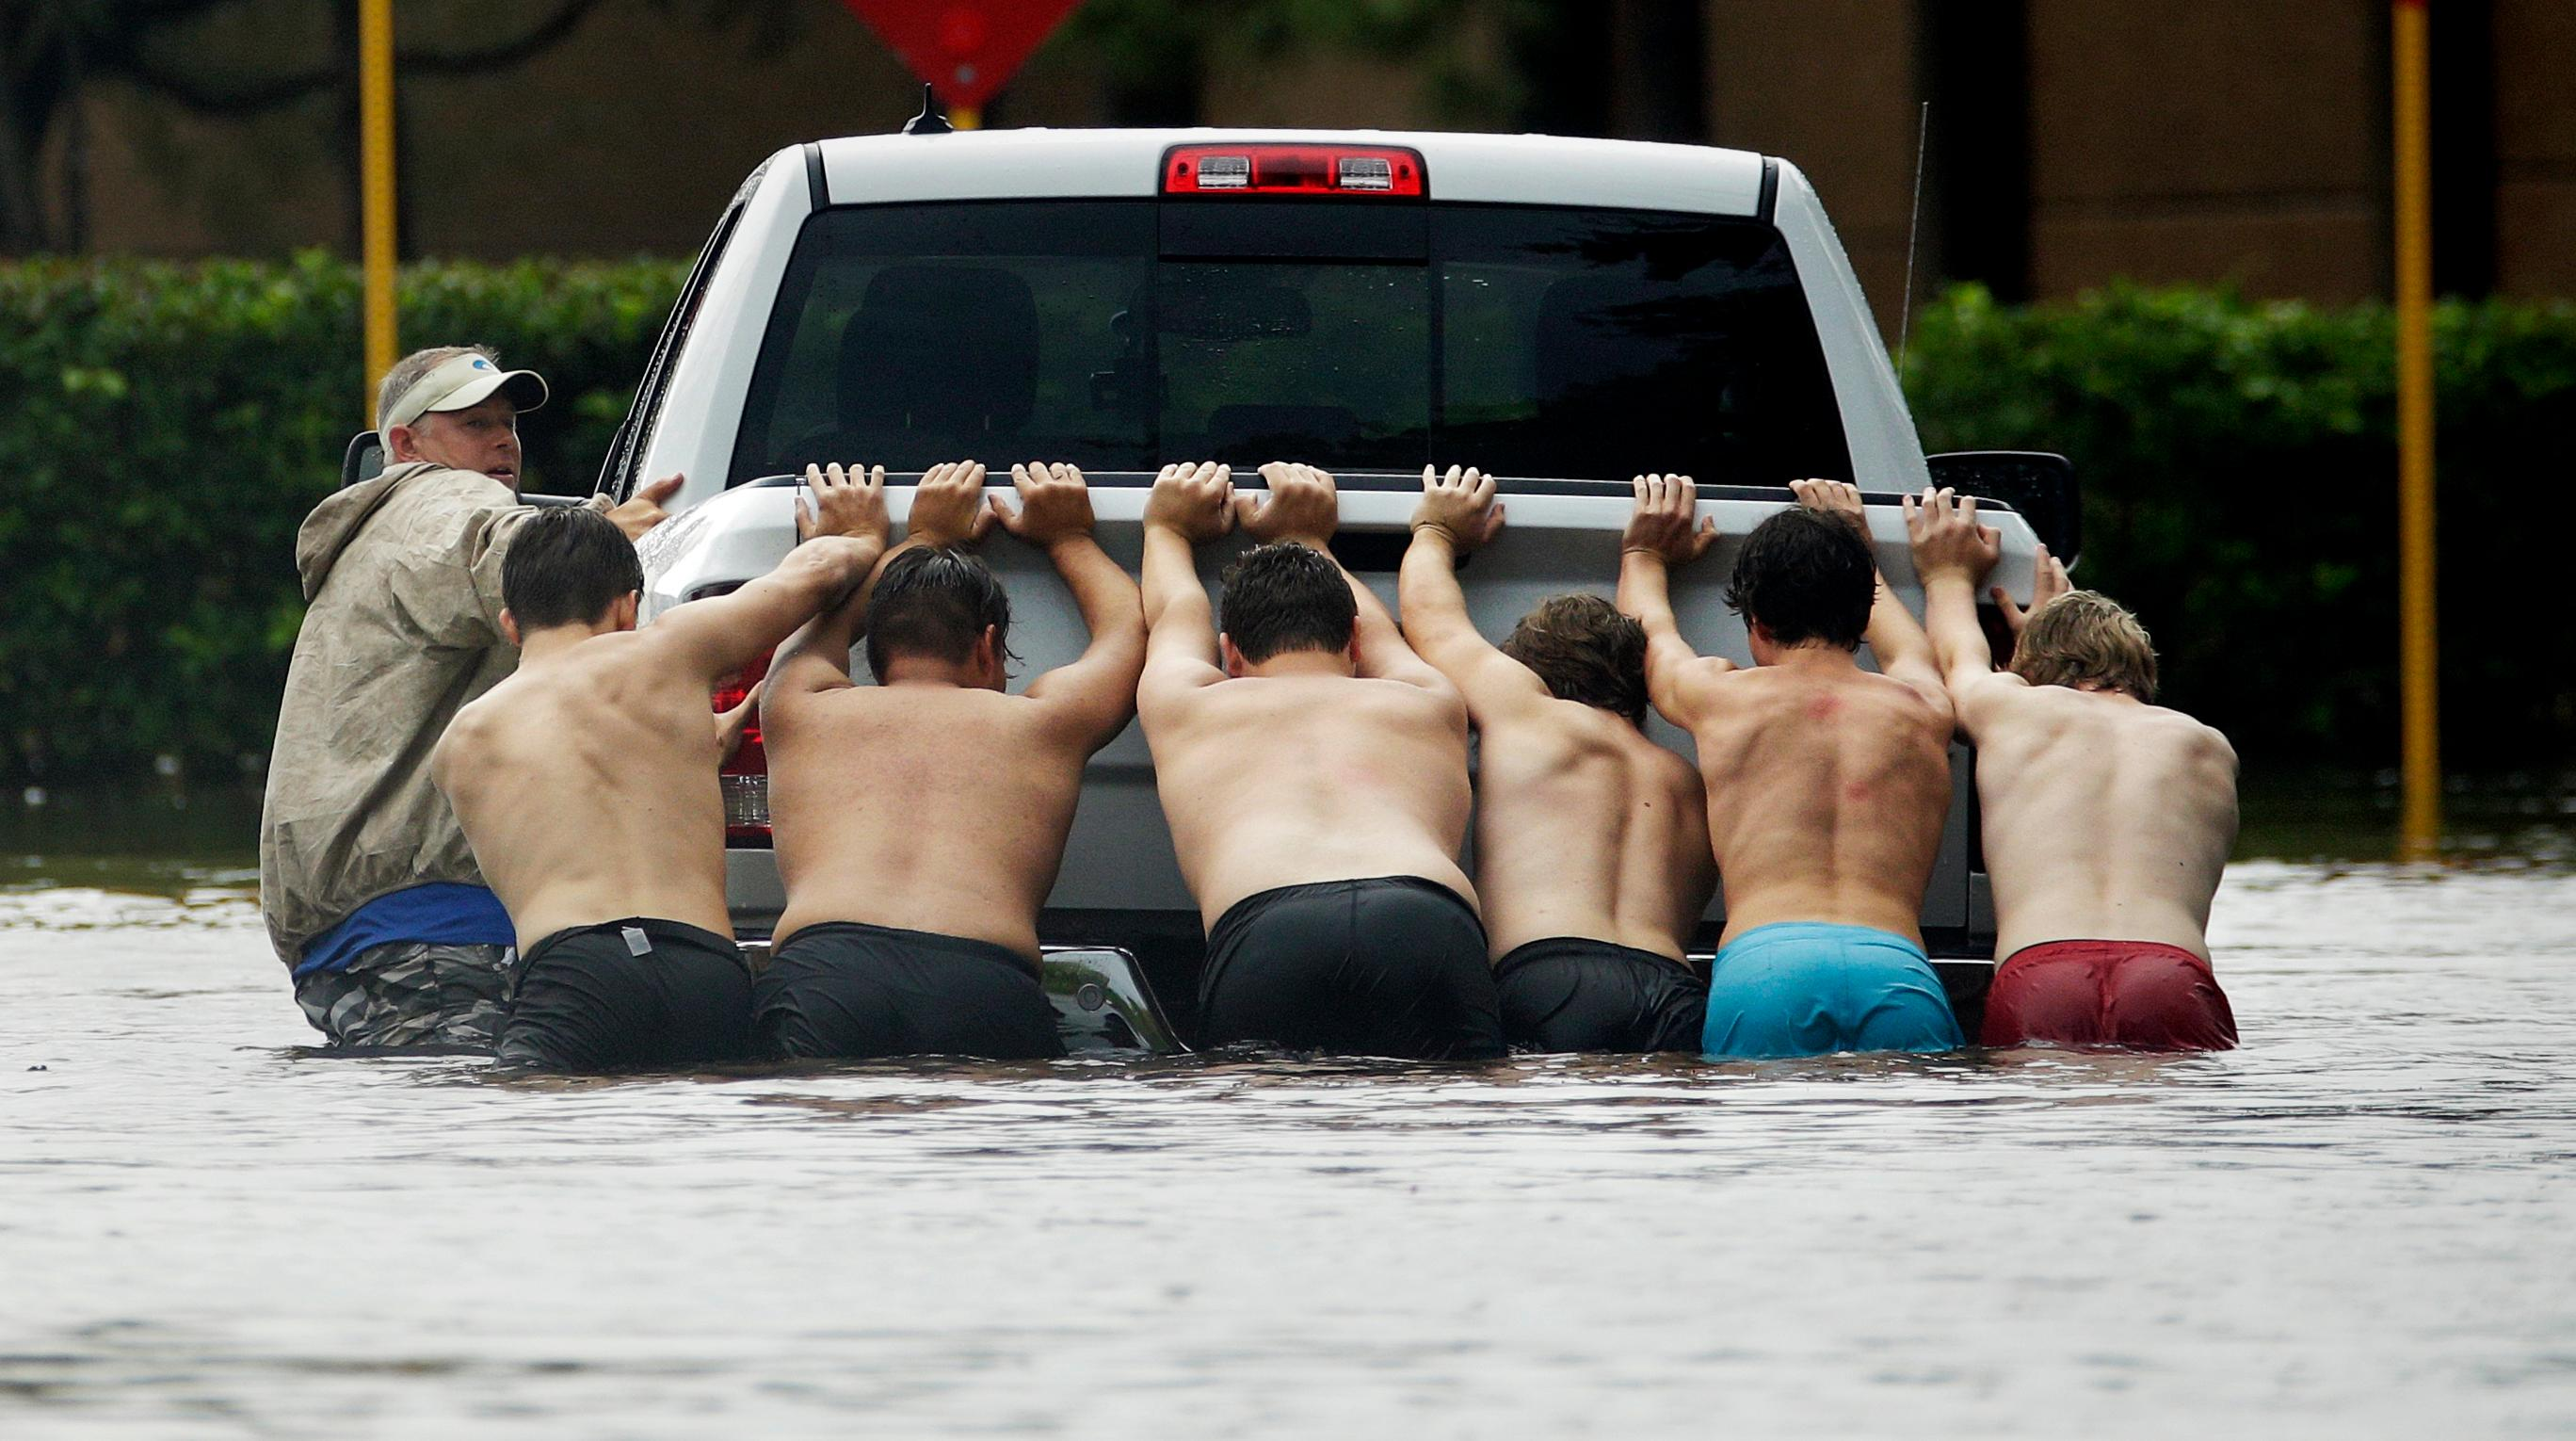 People push a stalled pickup through a flooded street in Houston, after Tropical Storm Harvey dumped heavy rains, Sunday, Aug. 27, 2017. The remnants of Harvey sent devastating floods pouring into Houston on Sunday as rising water chased thousands of people to rooftops or higher ground. (AP Photo/Charlie Riedel)